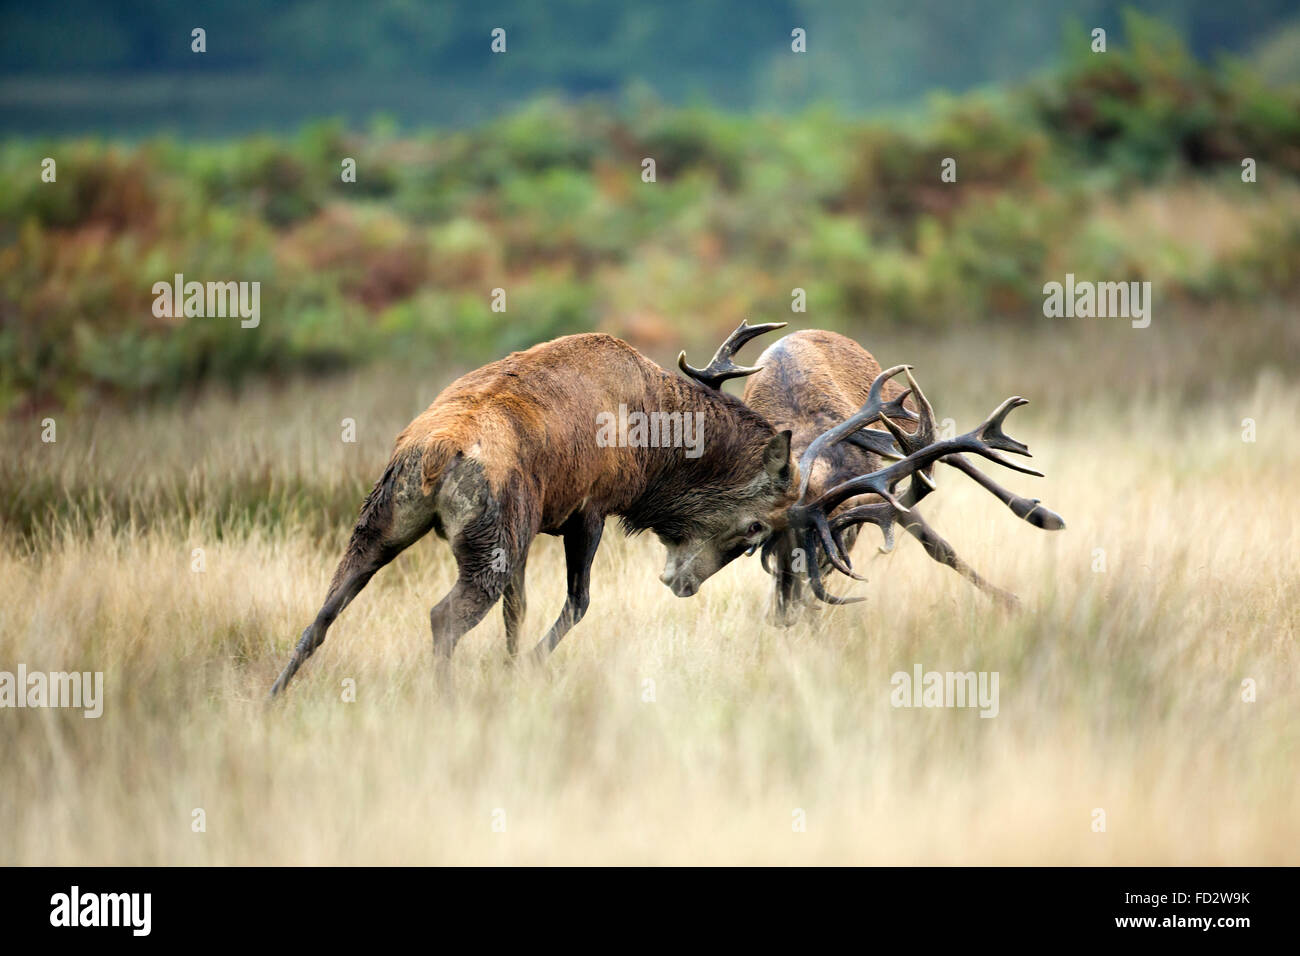 Red deer (Cervus elaphus) stags battlingduring the rutting season - Stock Image